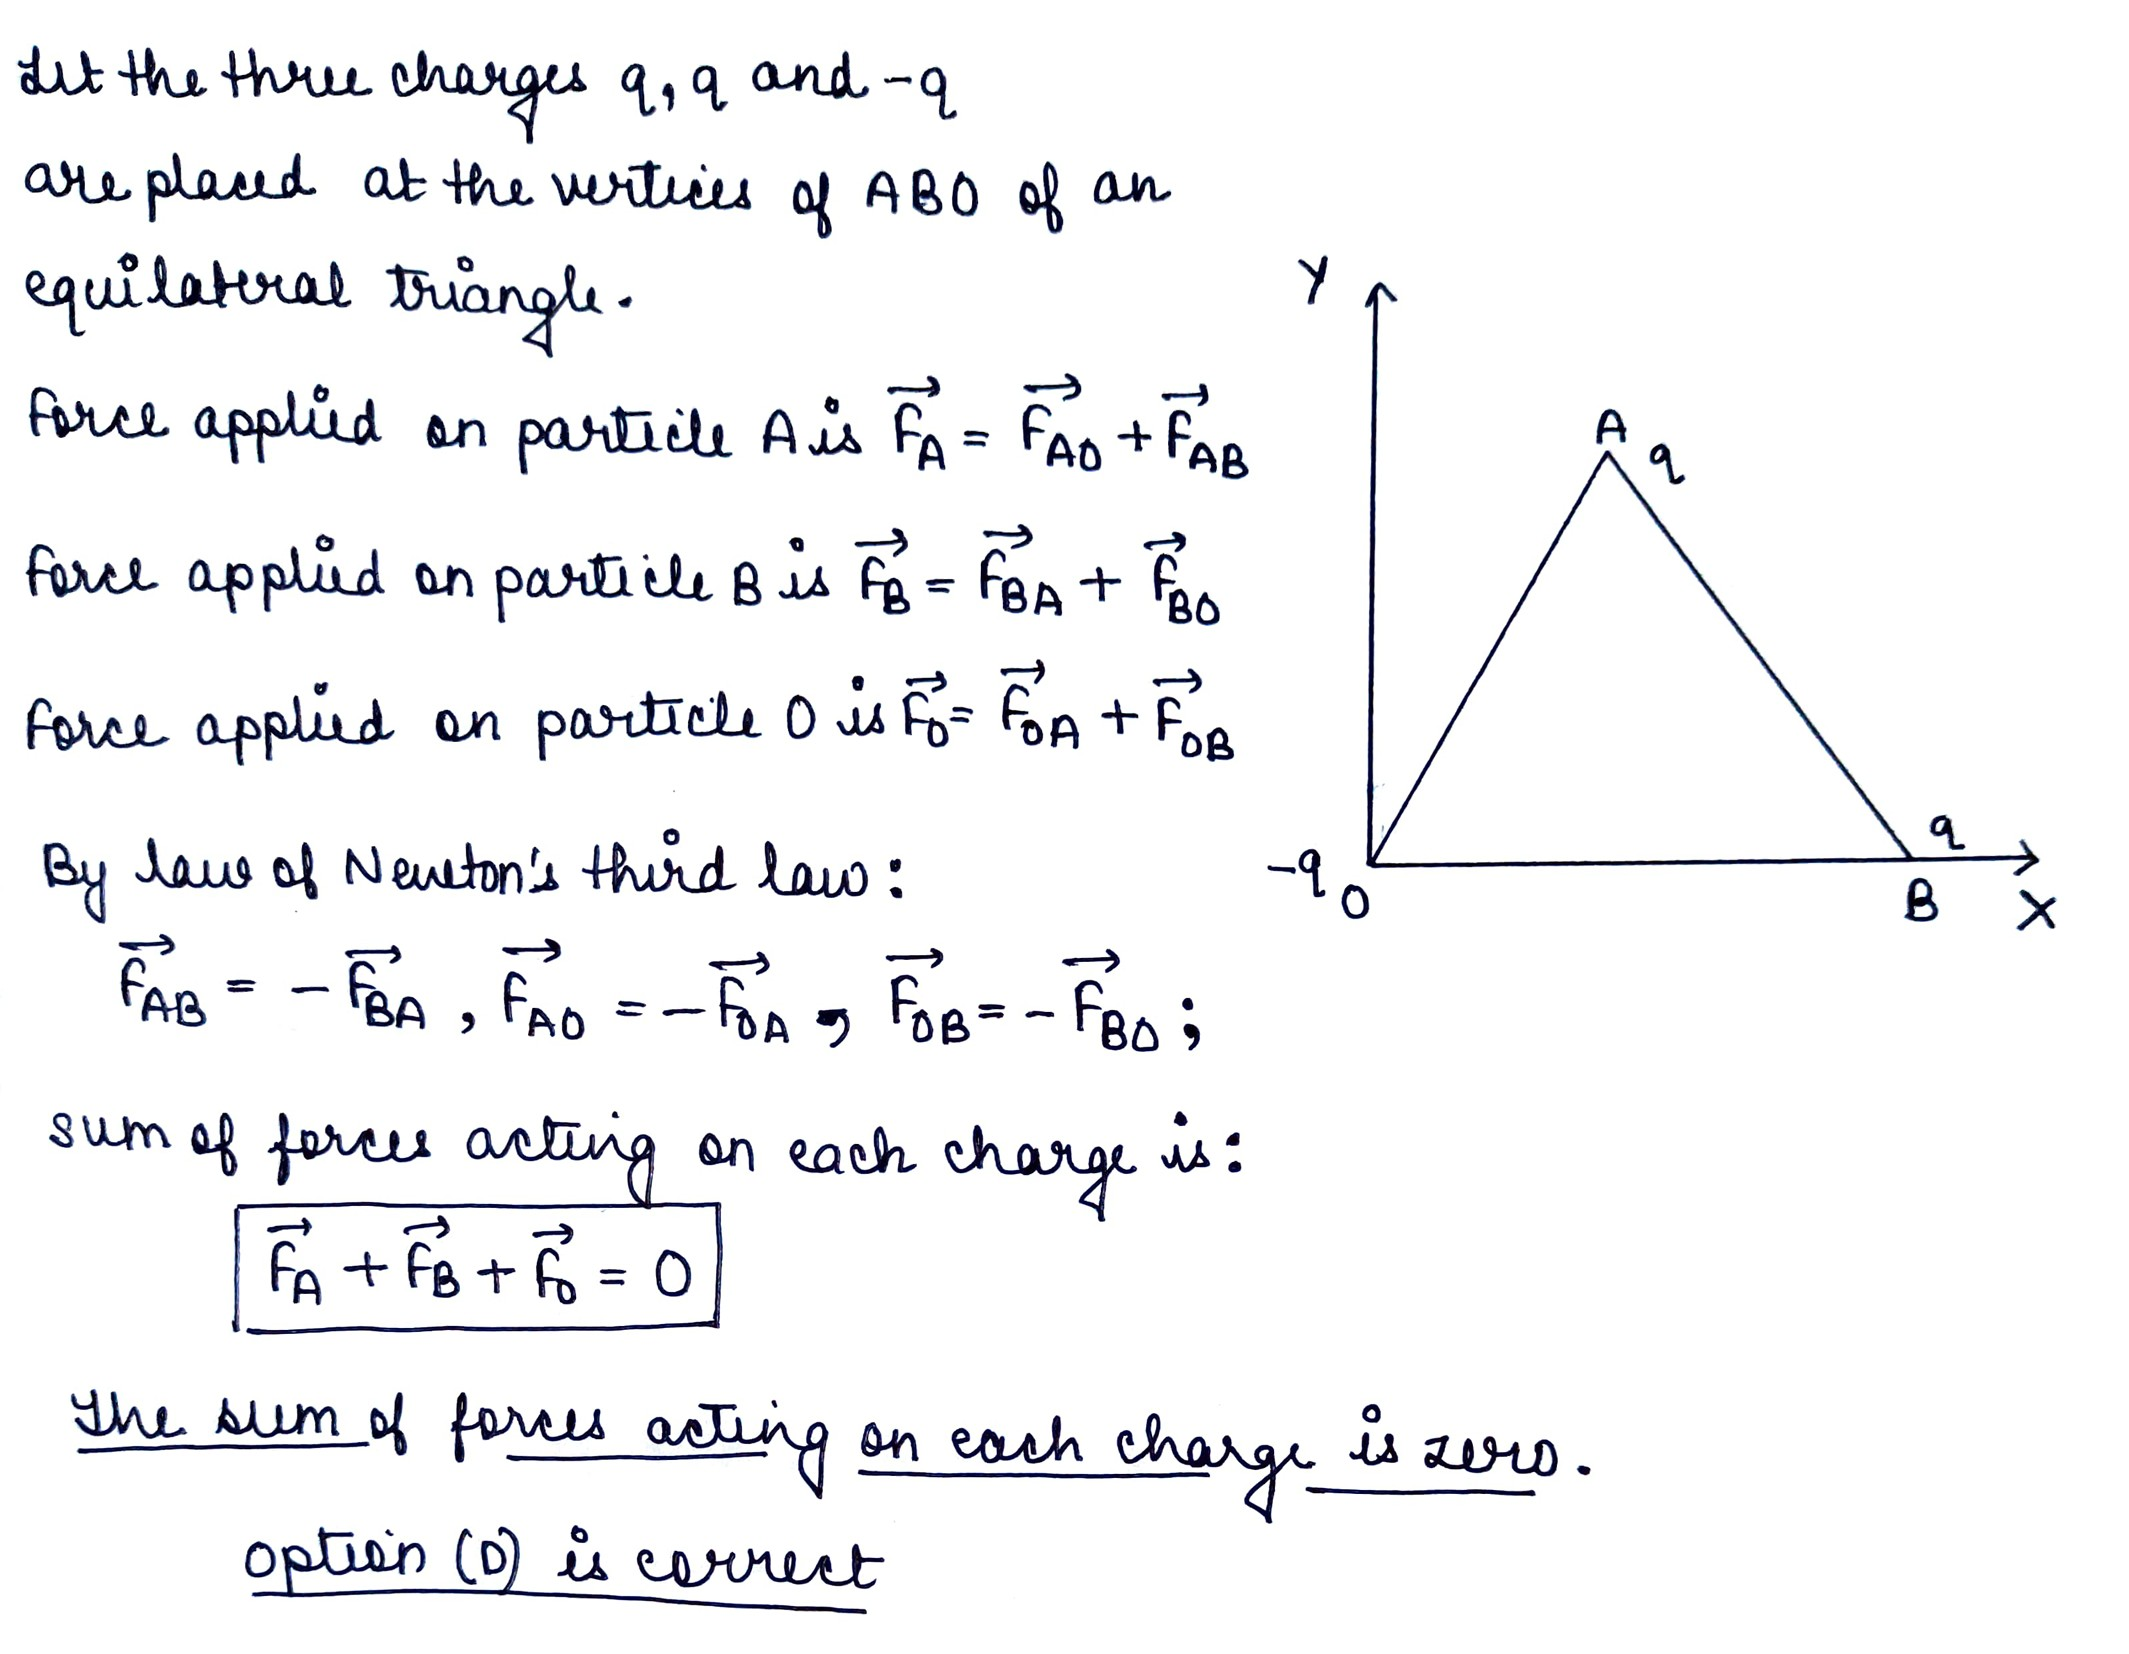 Consider The Charges Q Q And Q Placed At The Vertices Of An Equilateral Triangle Of Each Side L The Sum Of Forces Acting On Each Charge Is